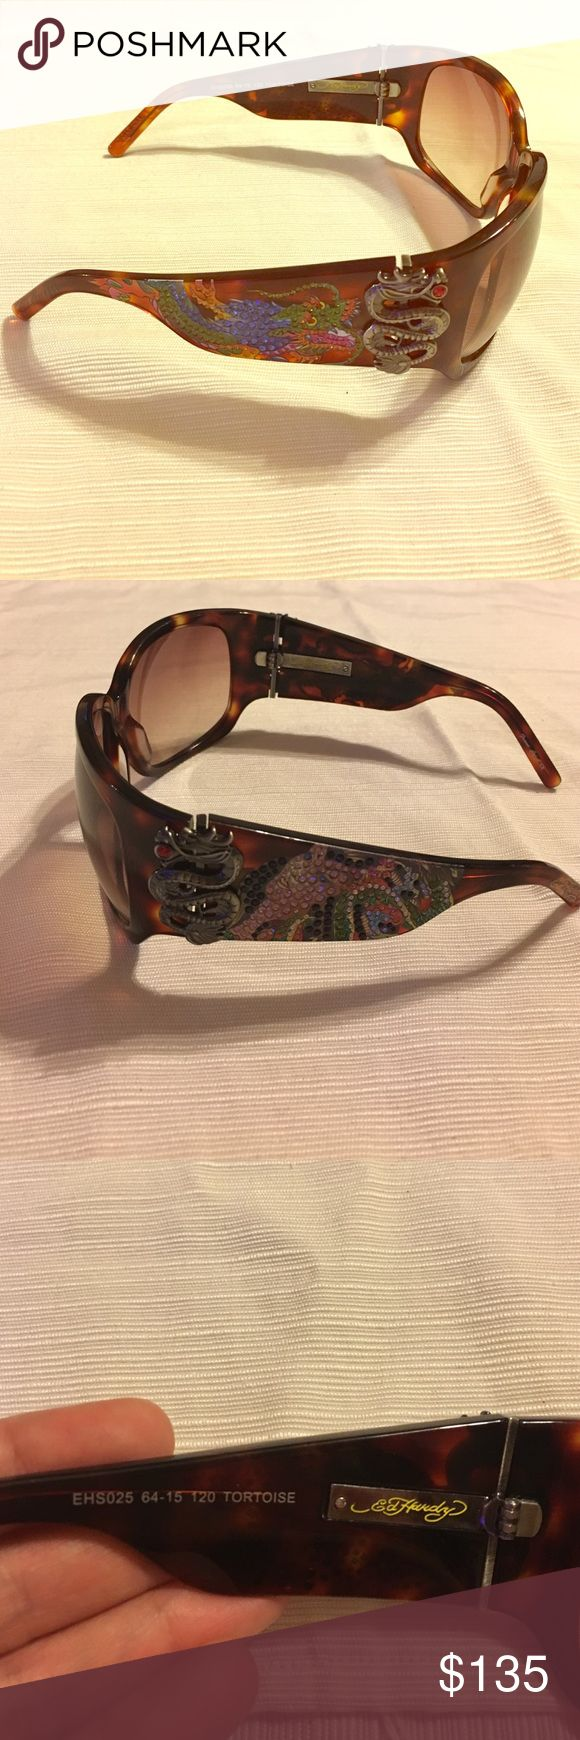 Original Ed Hardy Geisha/Dragon sunglasses Ed Hardy Geisha/Dragon sunglasses with Swarovski crystals. 2 stones are missing in the Geisha side and is not noticeable. Does NOT come with a case thats why the price is soooo reasonable. Ed Hardy Accessories Glasses